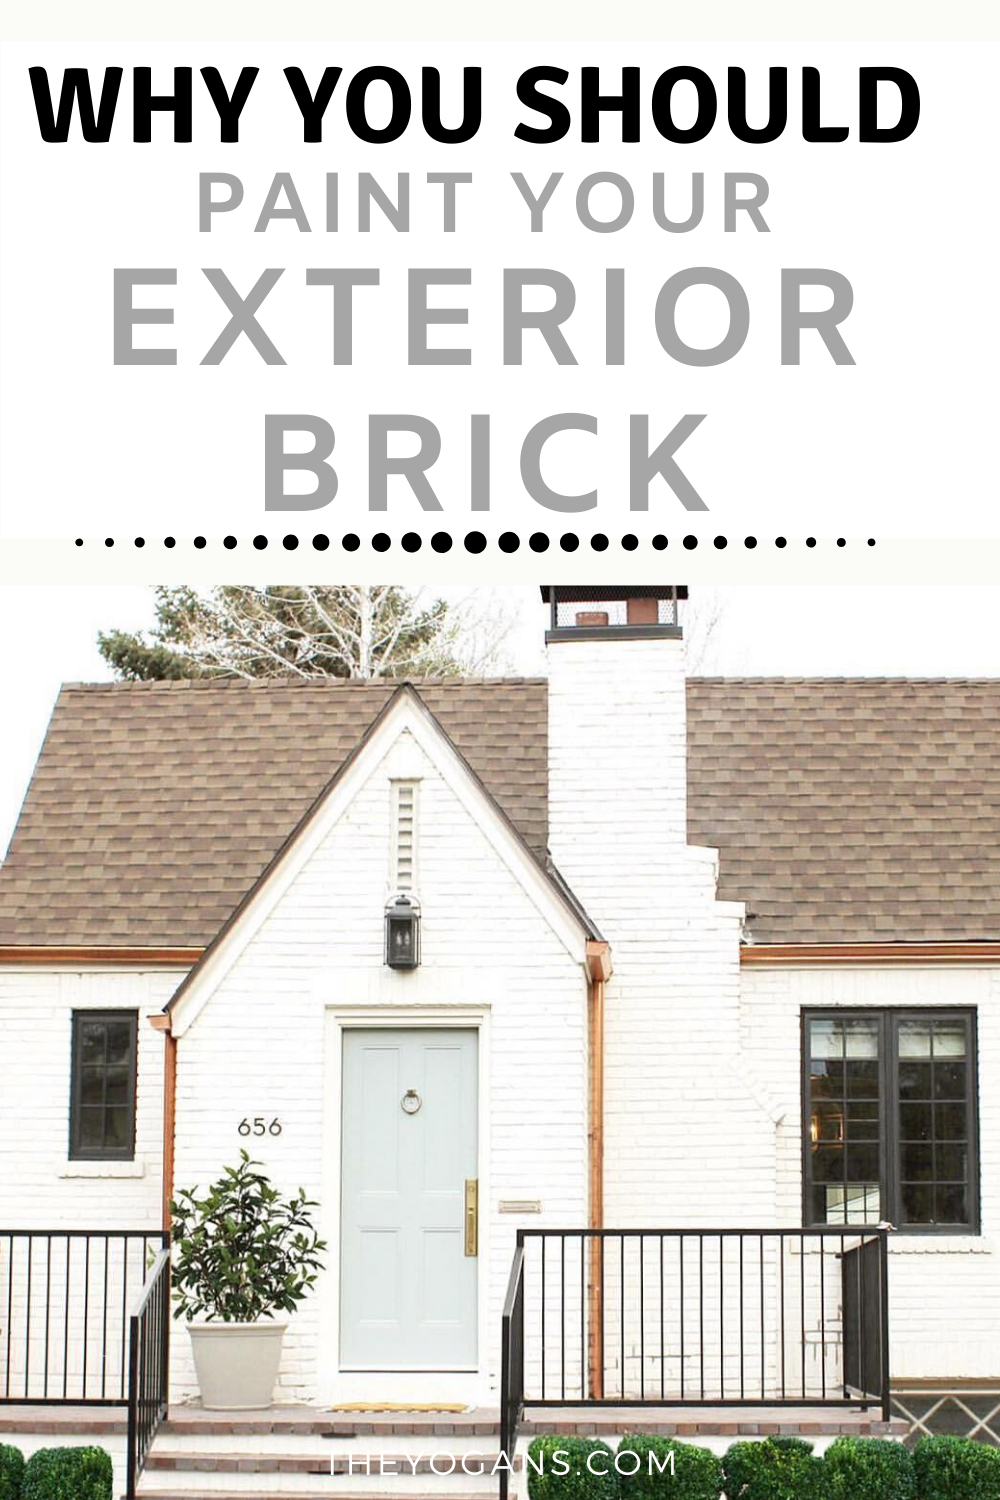 Painted Brick Exteriors Pros And Cons In 2020 Brick Exterior